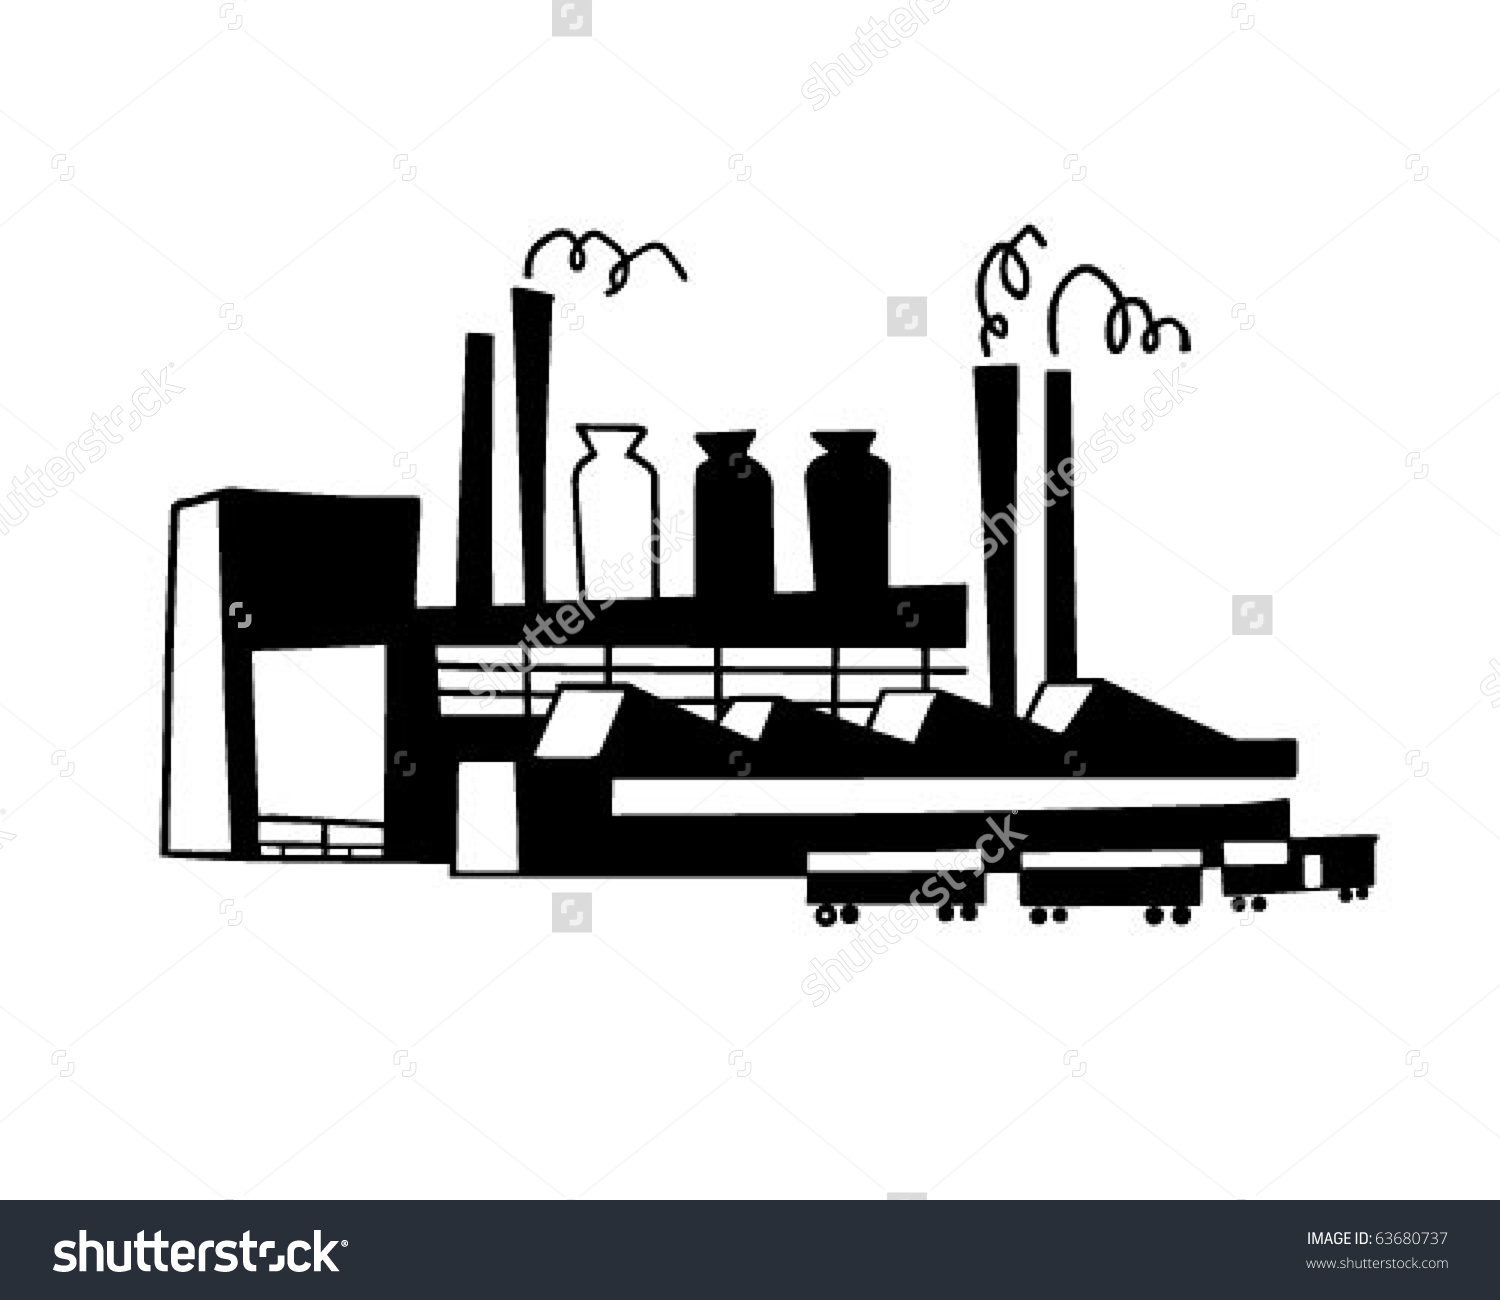 Steel clipart steel industry Clipart Industrial commercial garbage: Industrial